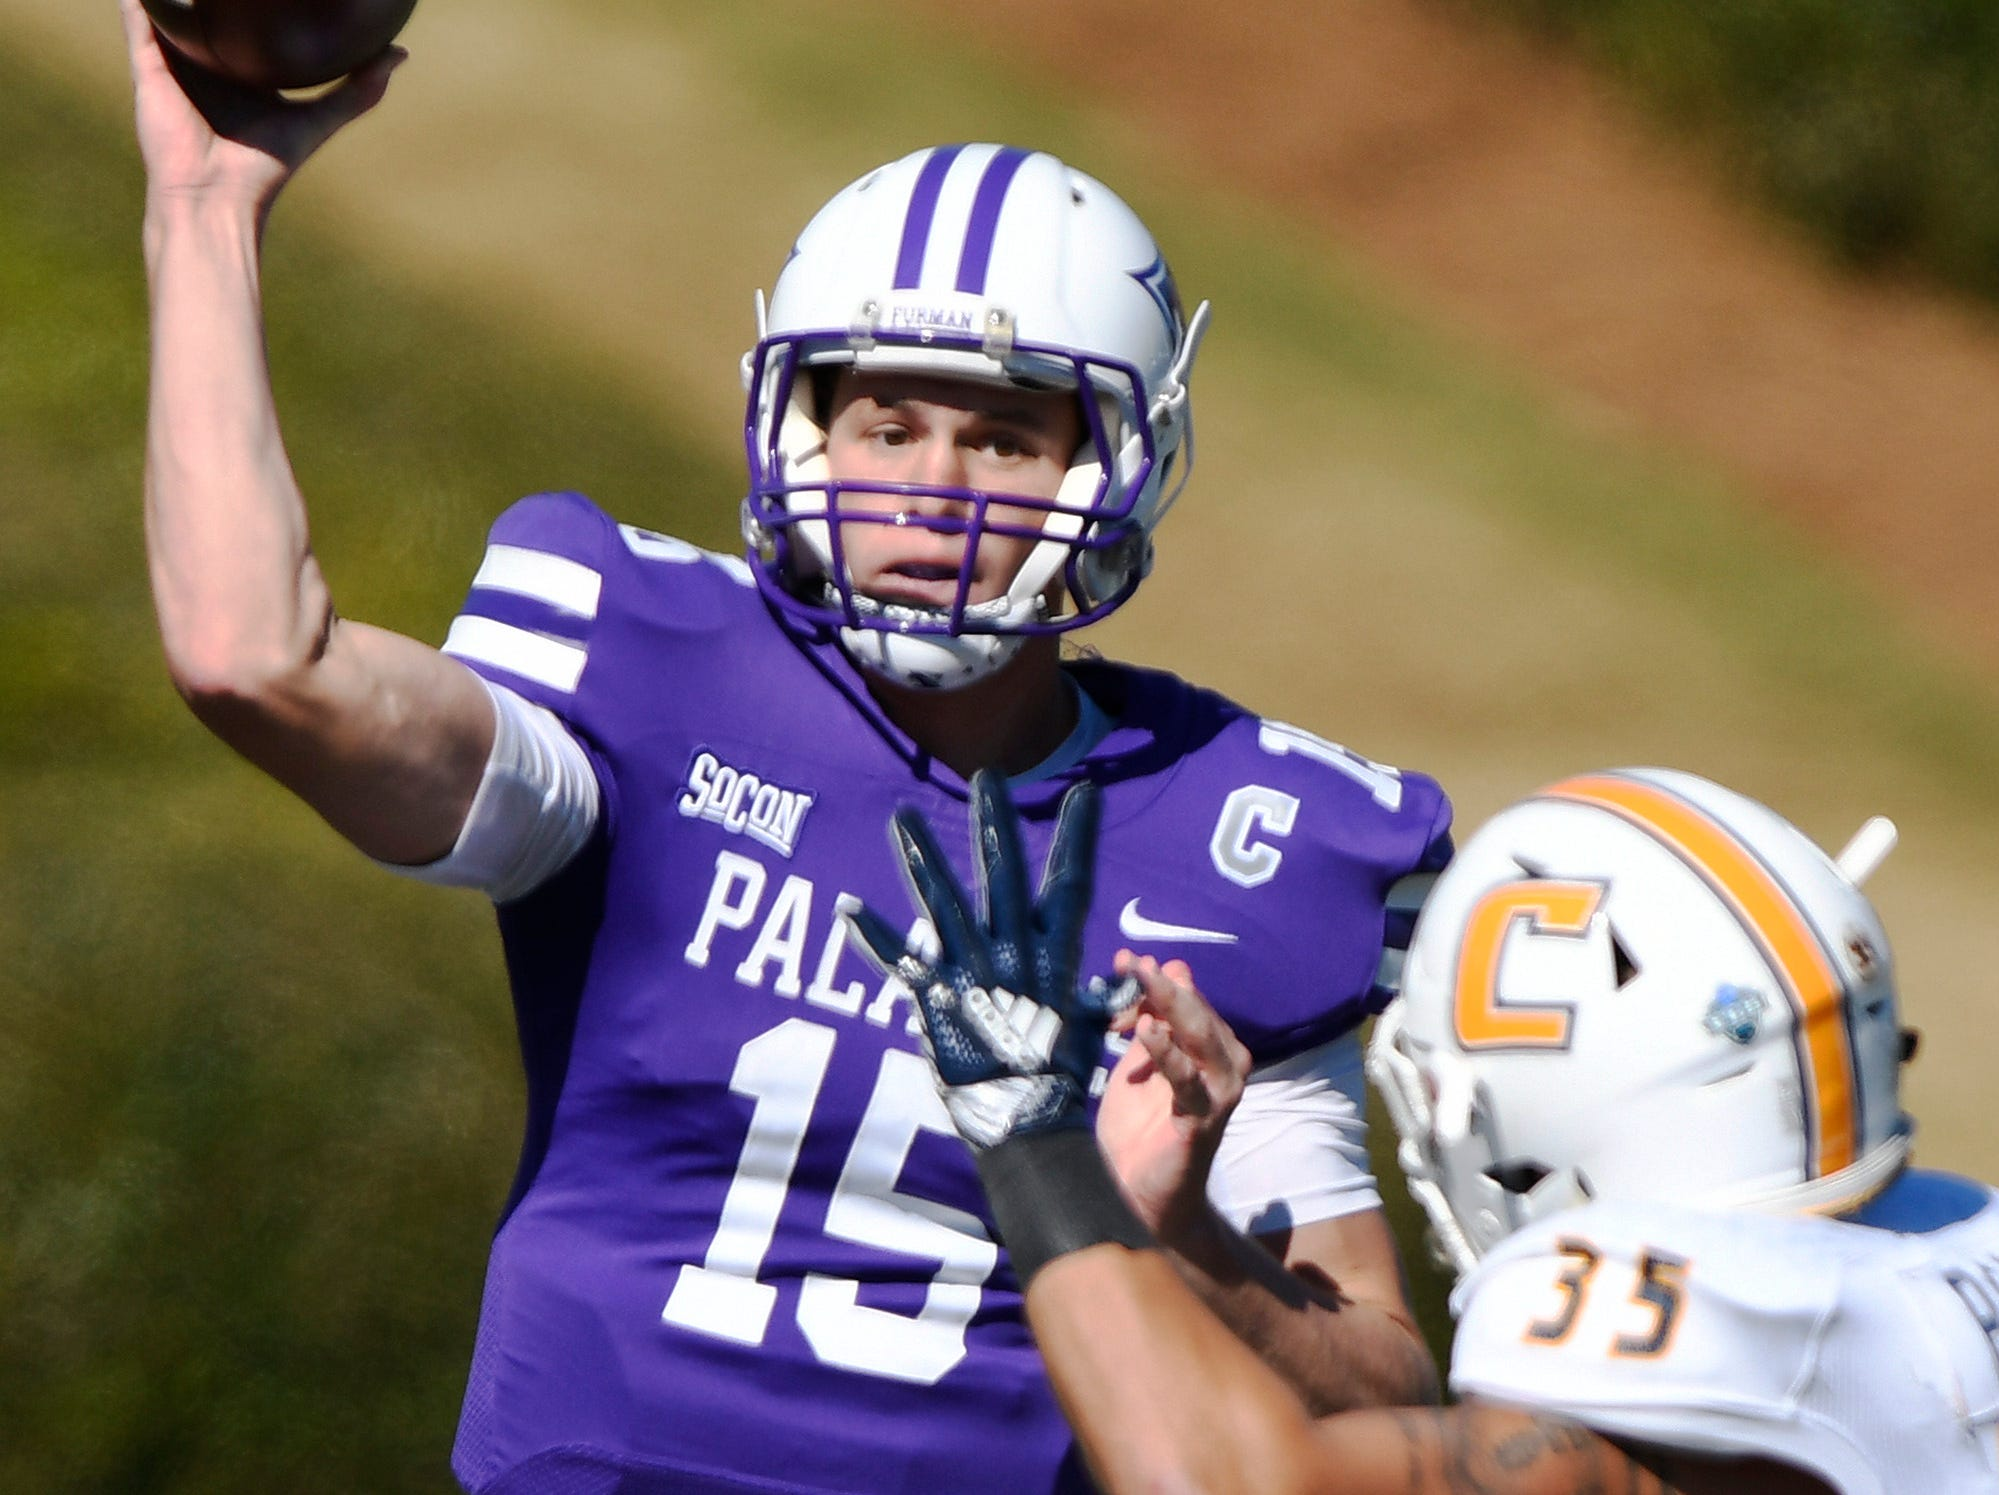 Furman quarterback Harris Roberts (15) threw five touchdown passes in the Paladins' 35-30 win over Mercer on Saturday